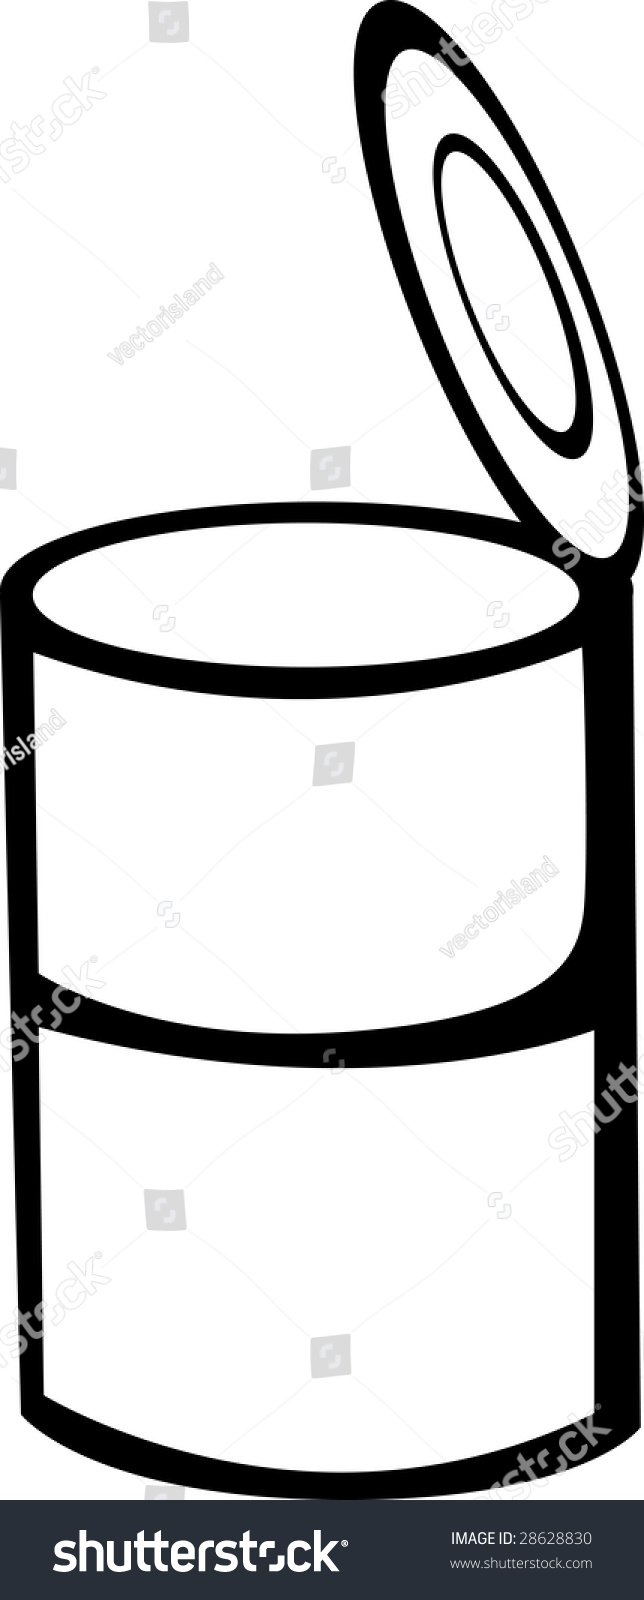 Soup Can Clip Art - dothuytinh